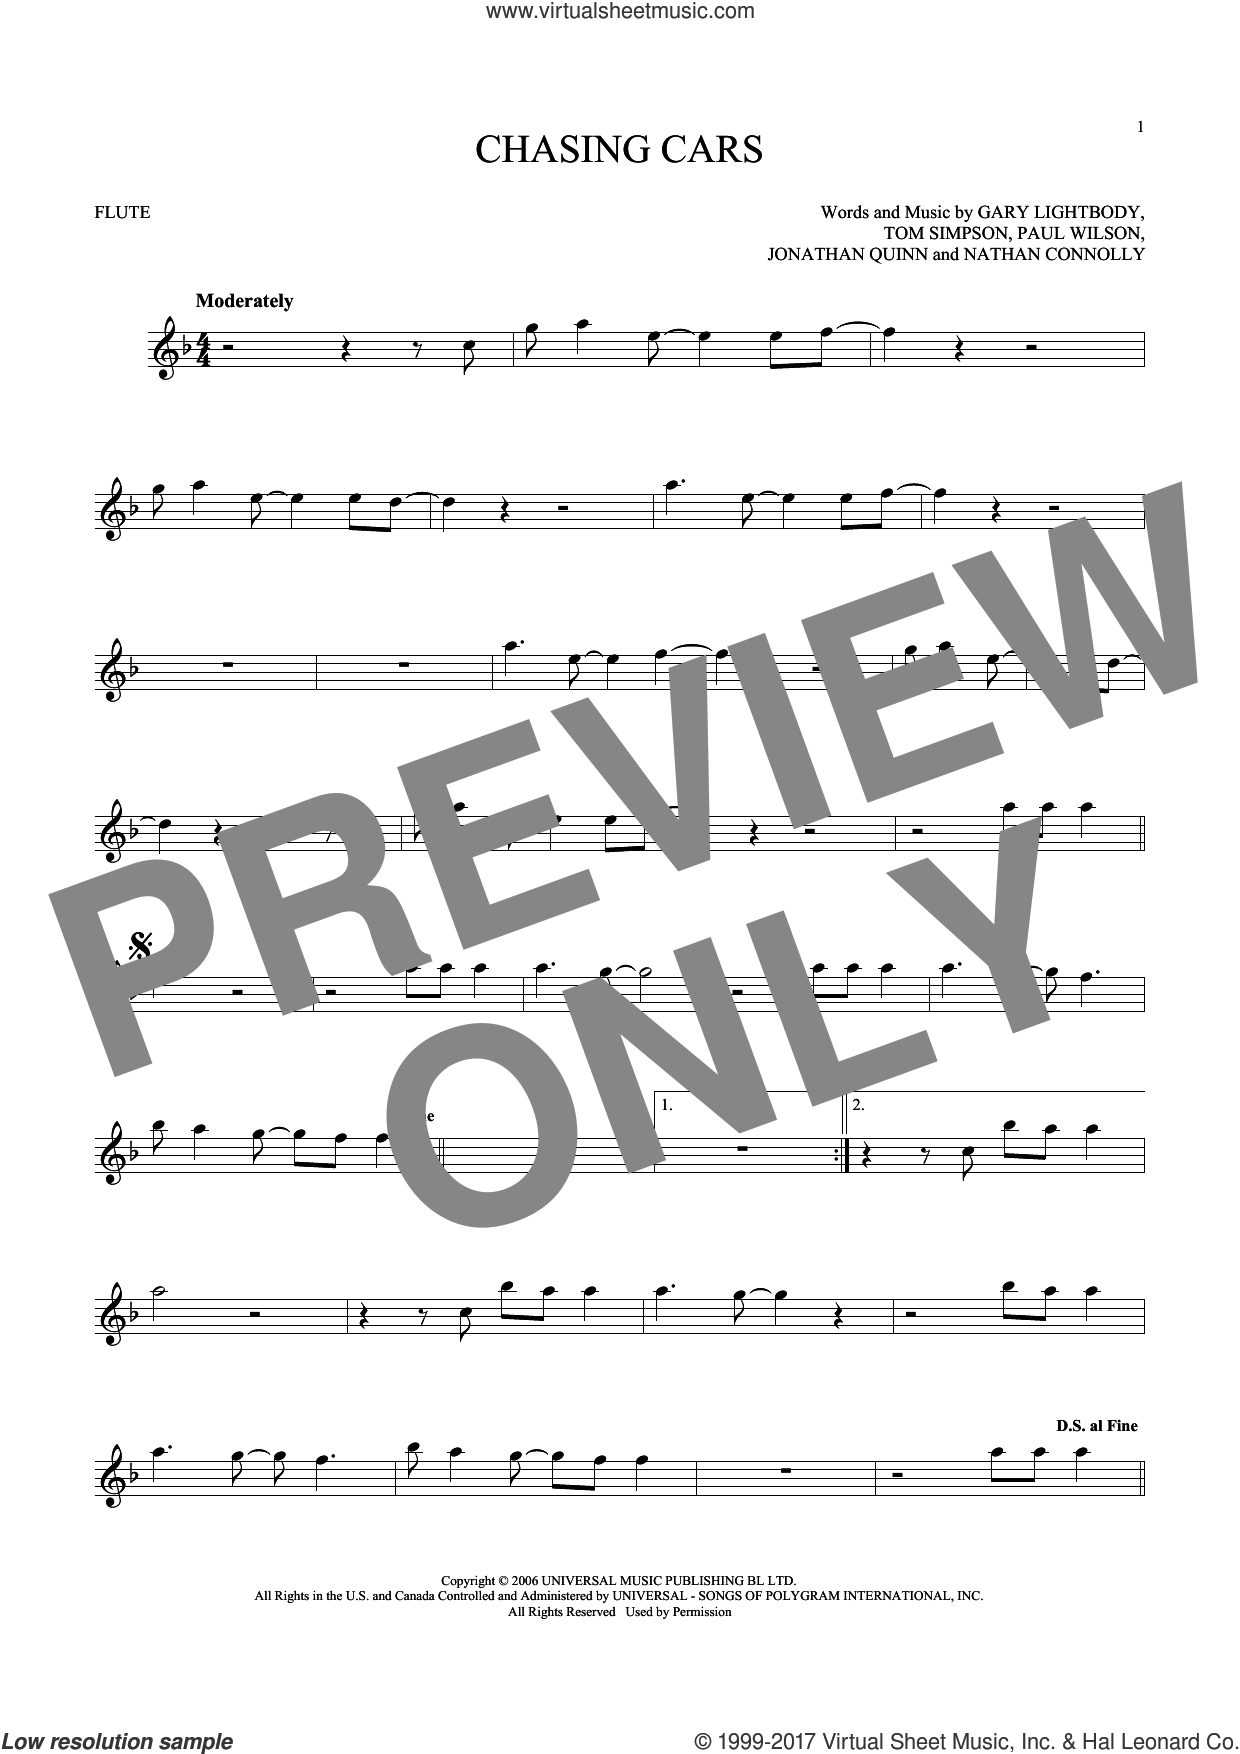 Chasing Cars sheet music for flute solo by Snow Patrol, Gary Lightbody, Jonathan Quinn, Nathan Connolly, Paul Wilson and Tom Simpson, intermediate skill level